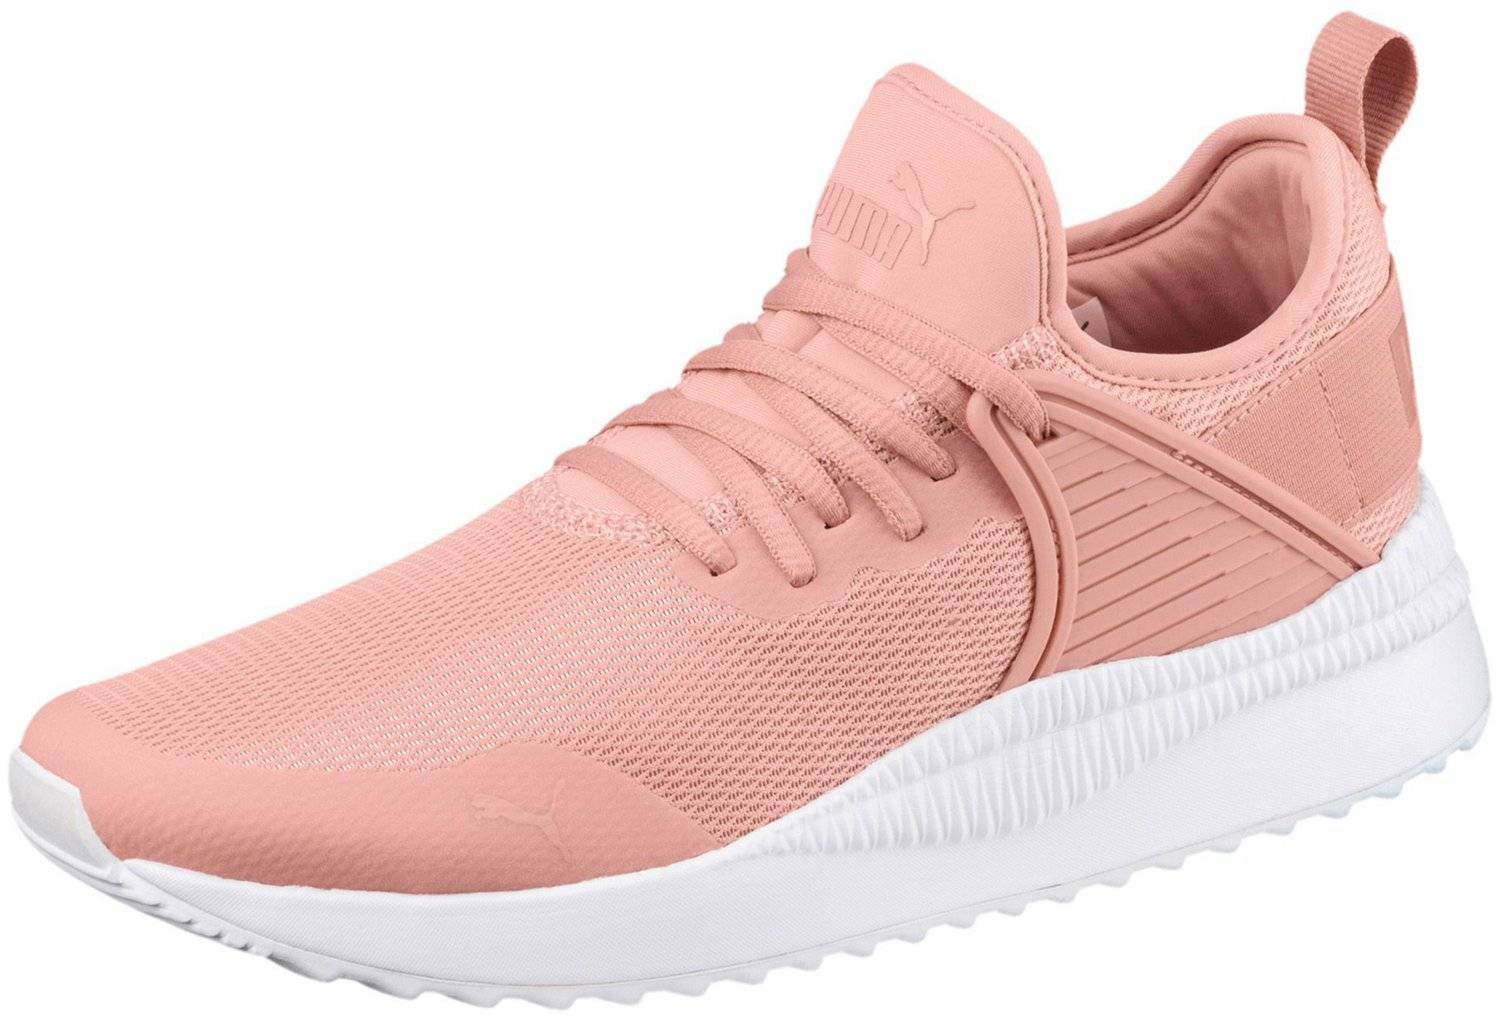 PUMA Women s Pacer Next Cage Lifestyle Shoes  7b76eb550